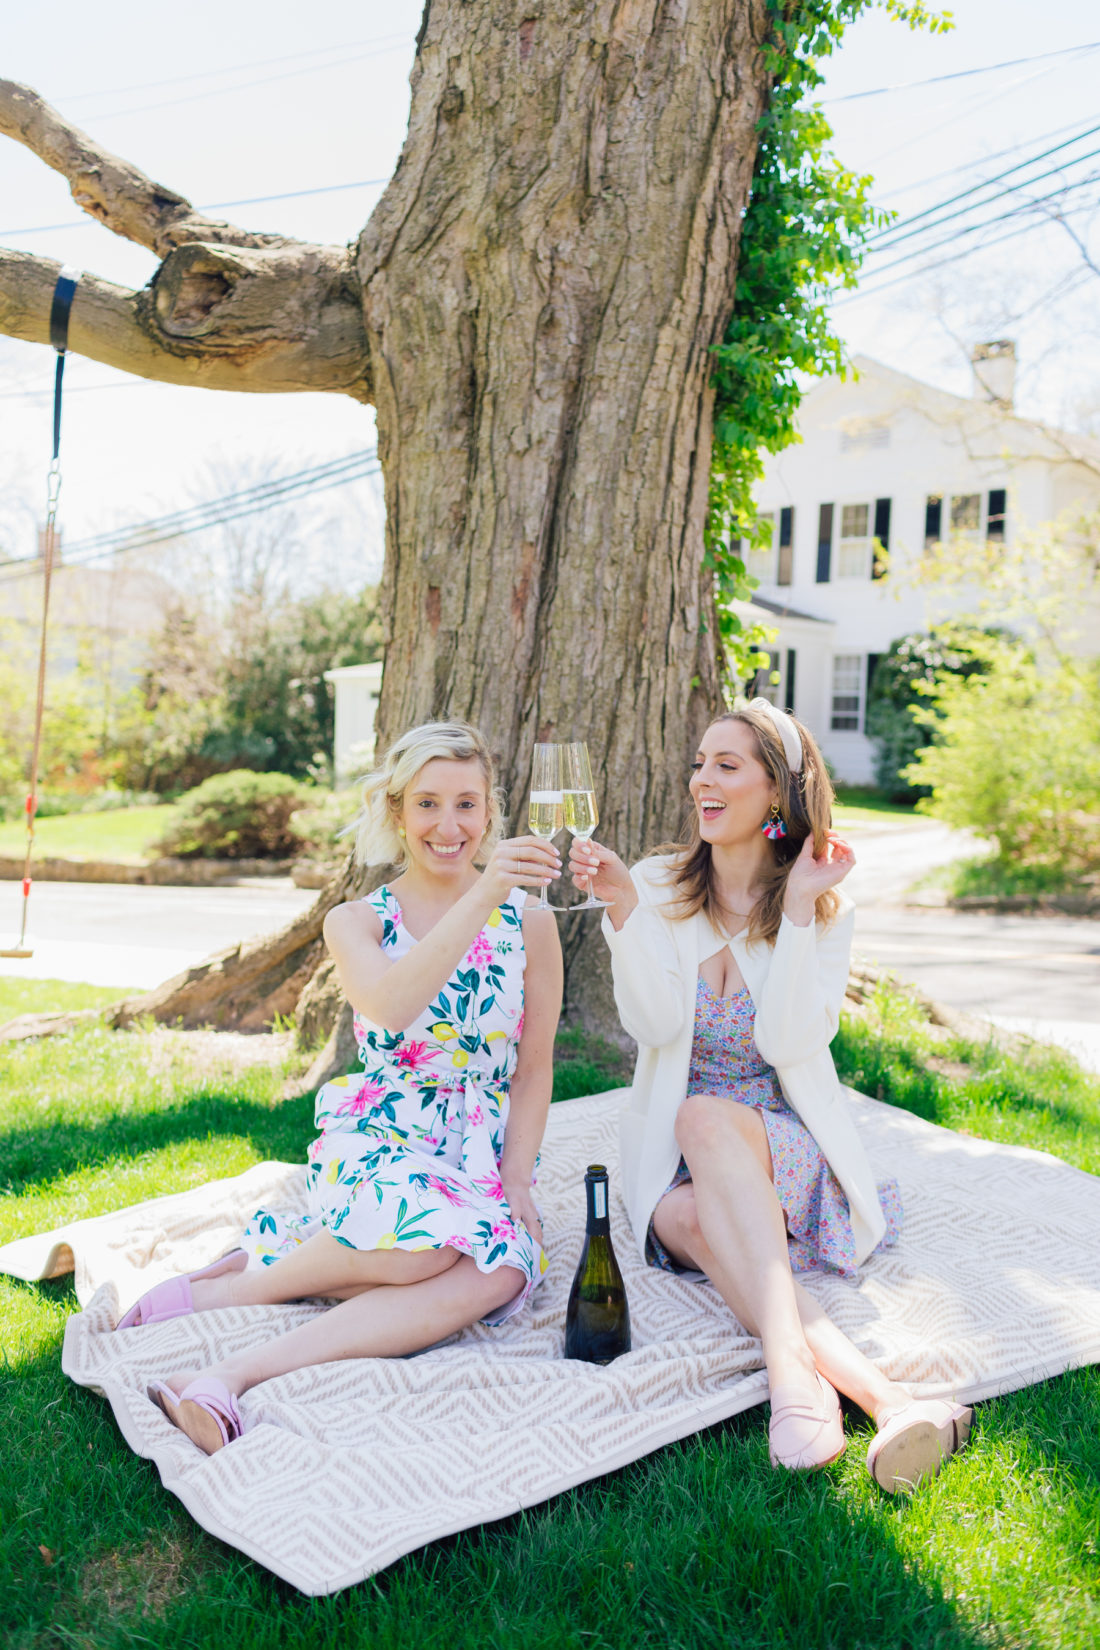 Eva Amurri Martino of Happily Eva After and Julia Dzafic of Lemon Stripes sit under a tree drinking champagne and reminiscing on their parenting style